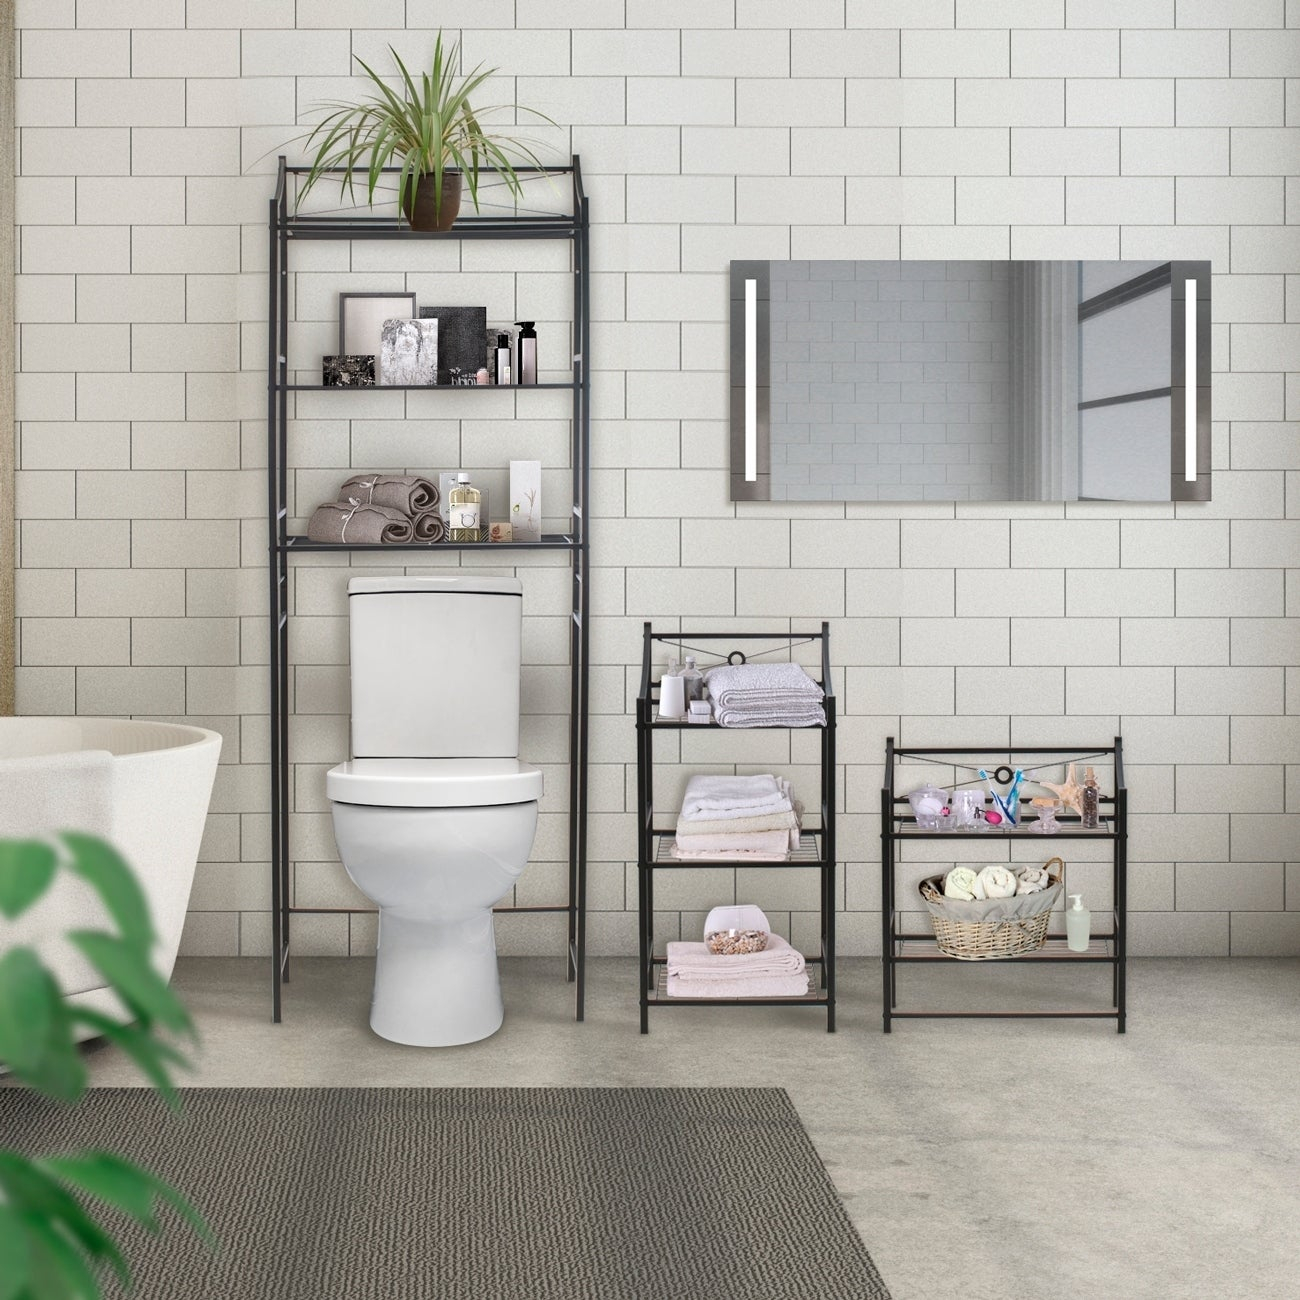 Sorbus Bathroom Storage Shelf Freestanding Shelves For Bath Essentials Planters Books And Much More in measurements 1300 X 1300